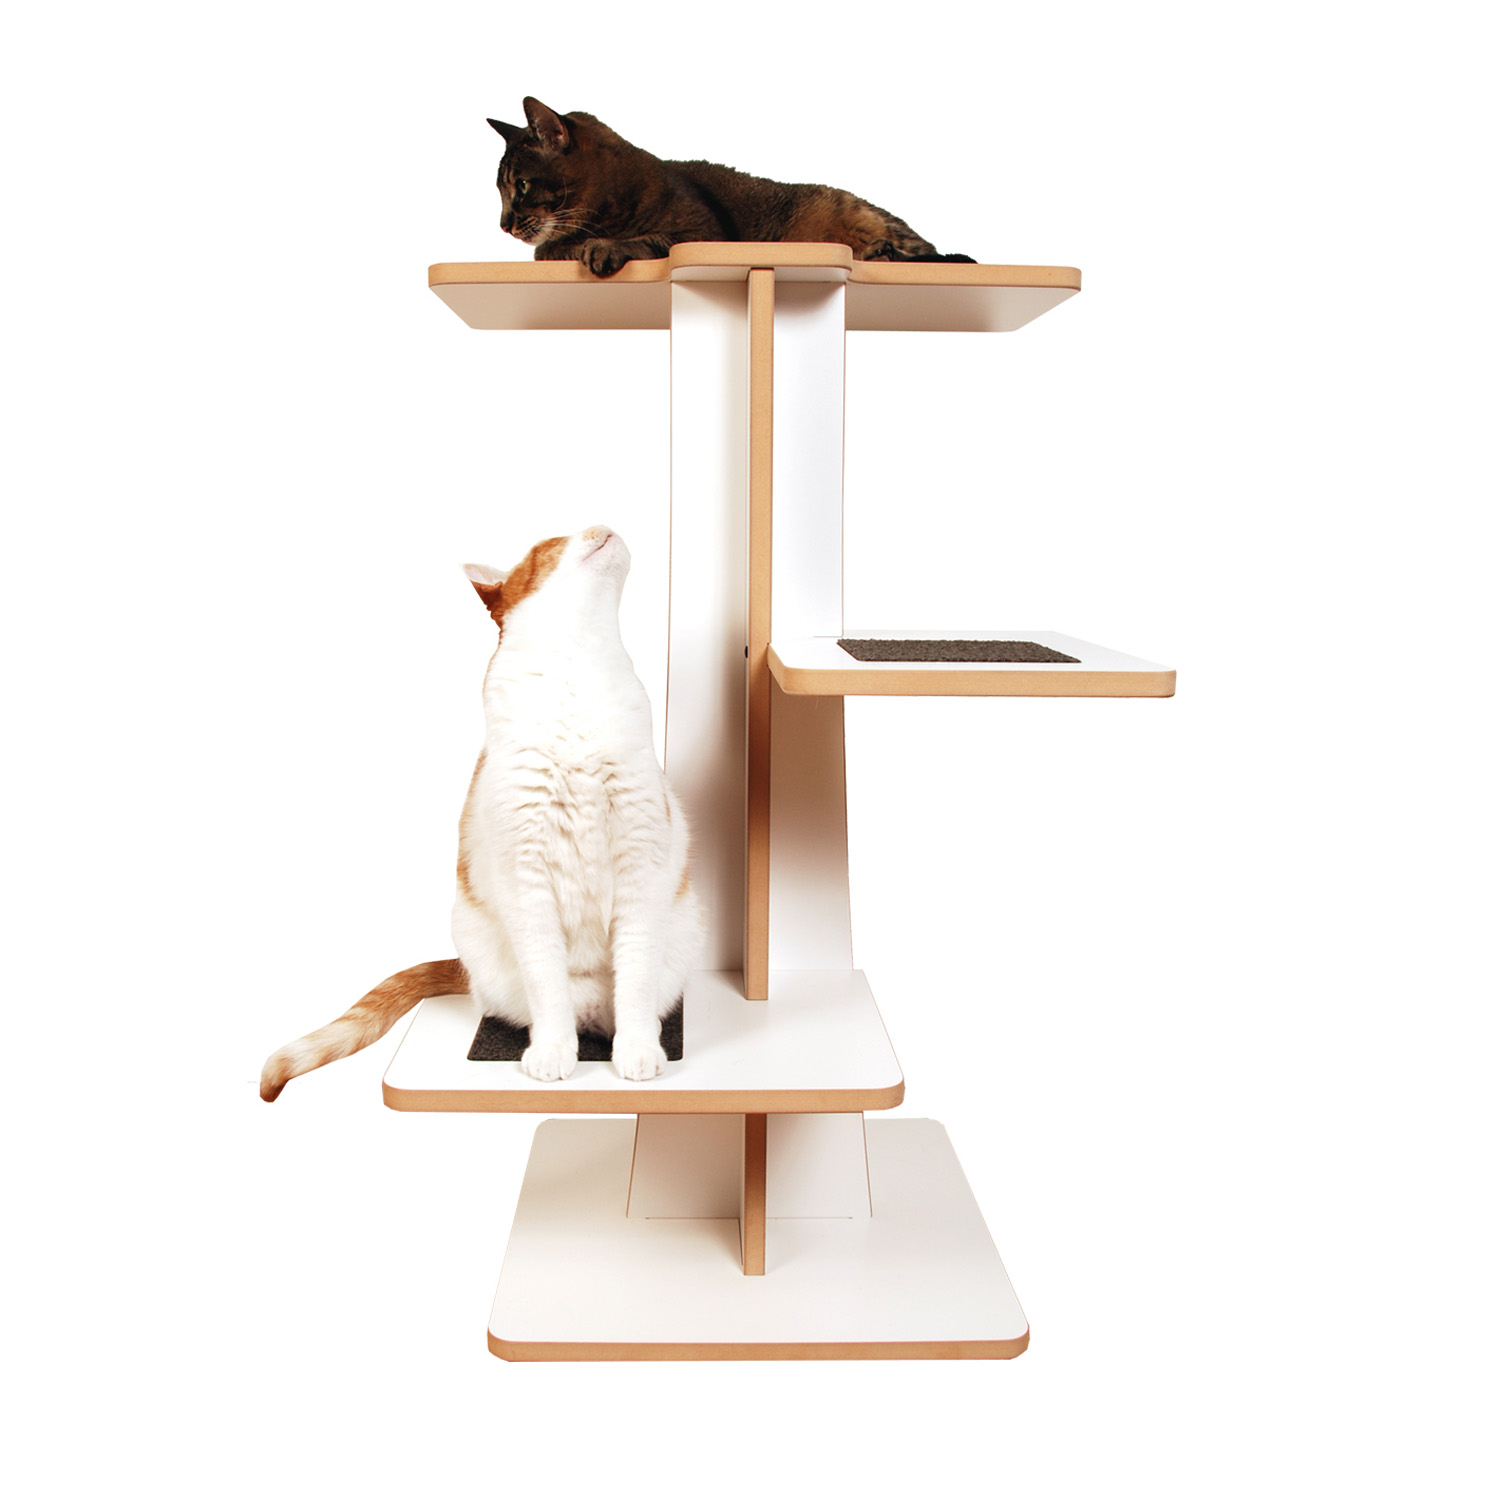 Very tall and durable cat house 84